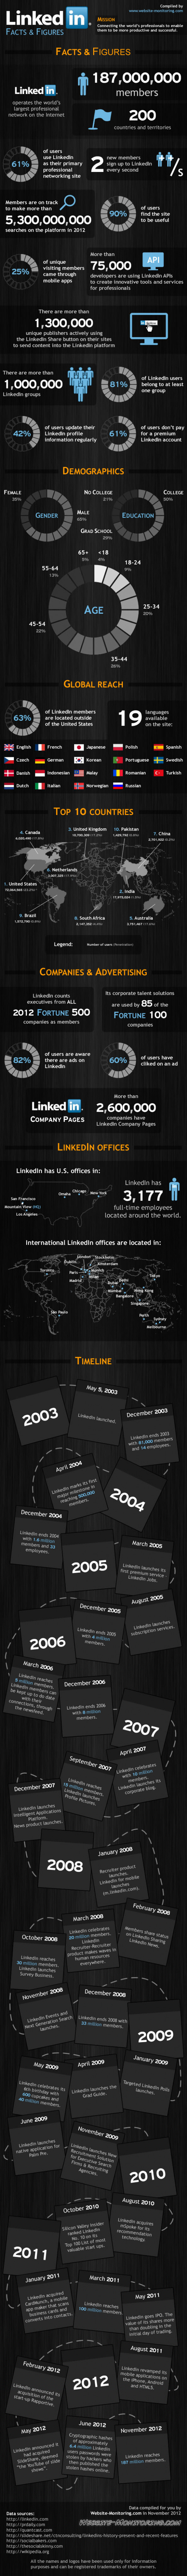 LinkedIn Facts &amp; Figures Infographic